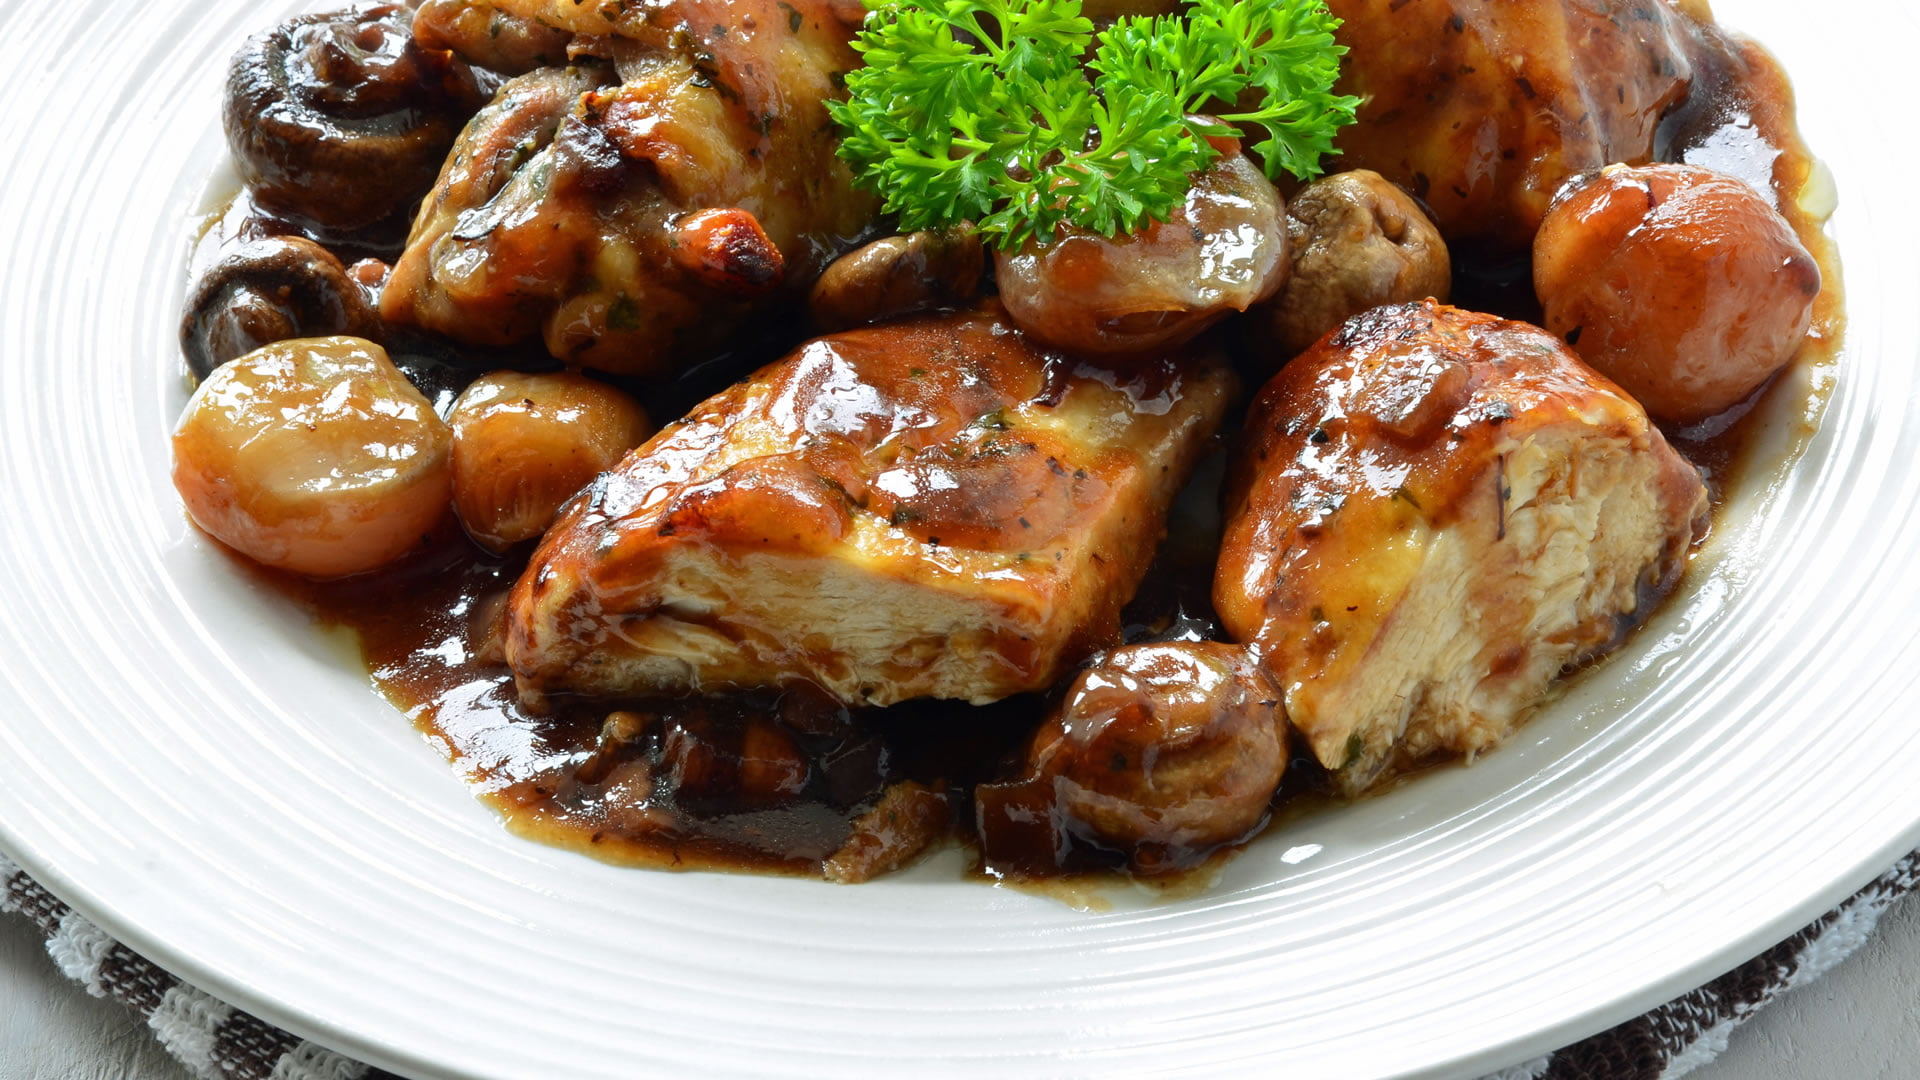 Coq au vin for Paris francia comida tipica